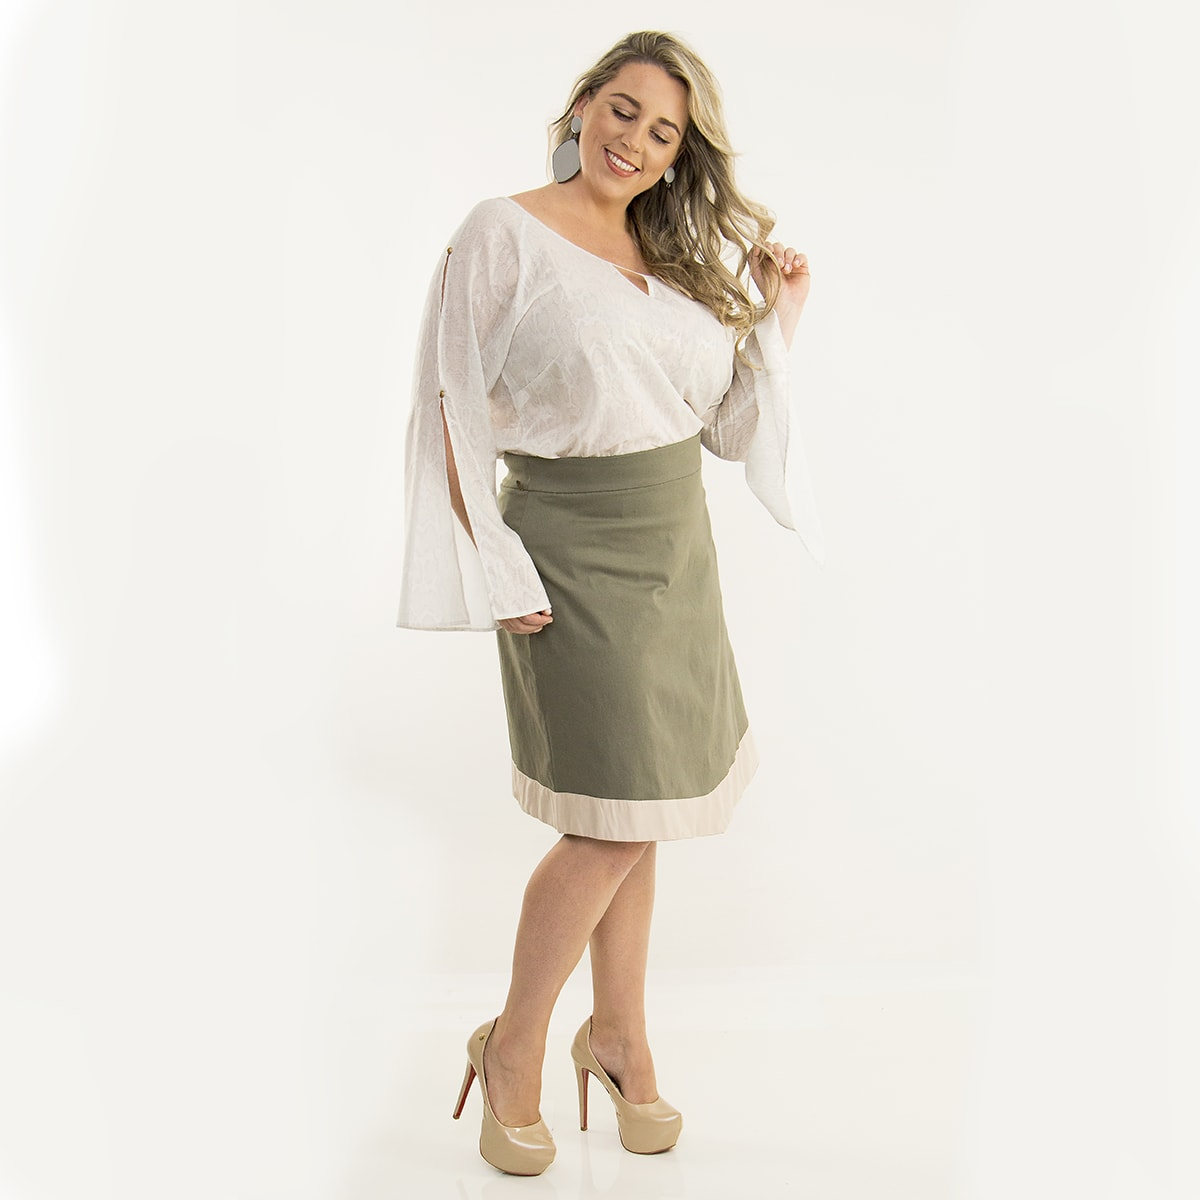 Saia Curta Plus Size Bicolor Encorpado com Elastano